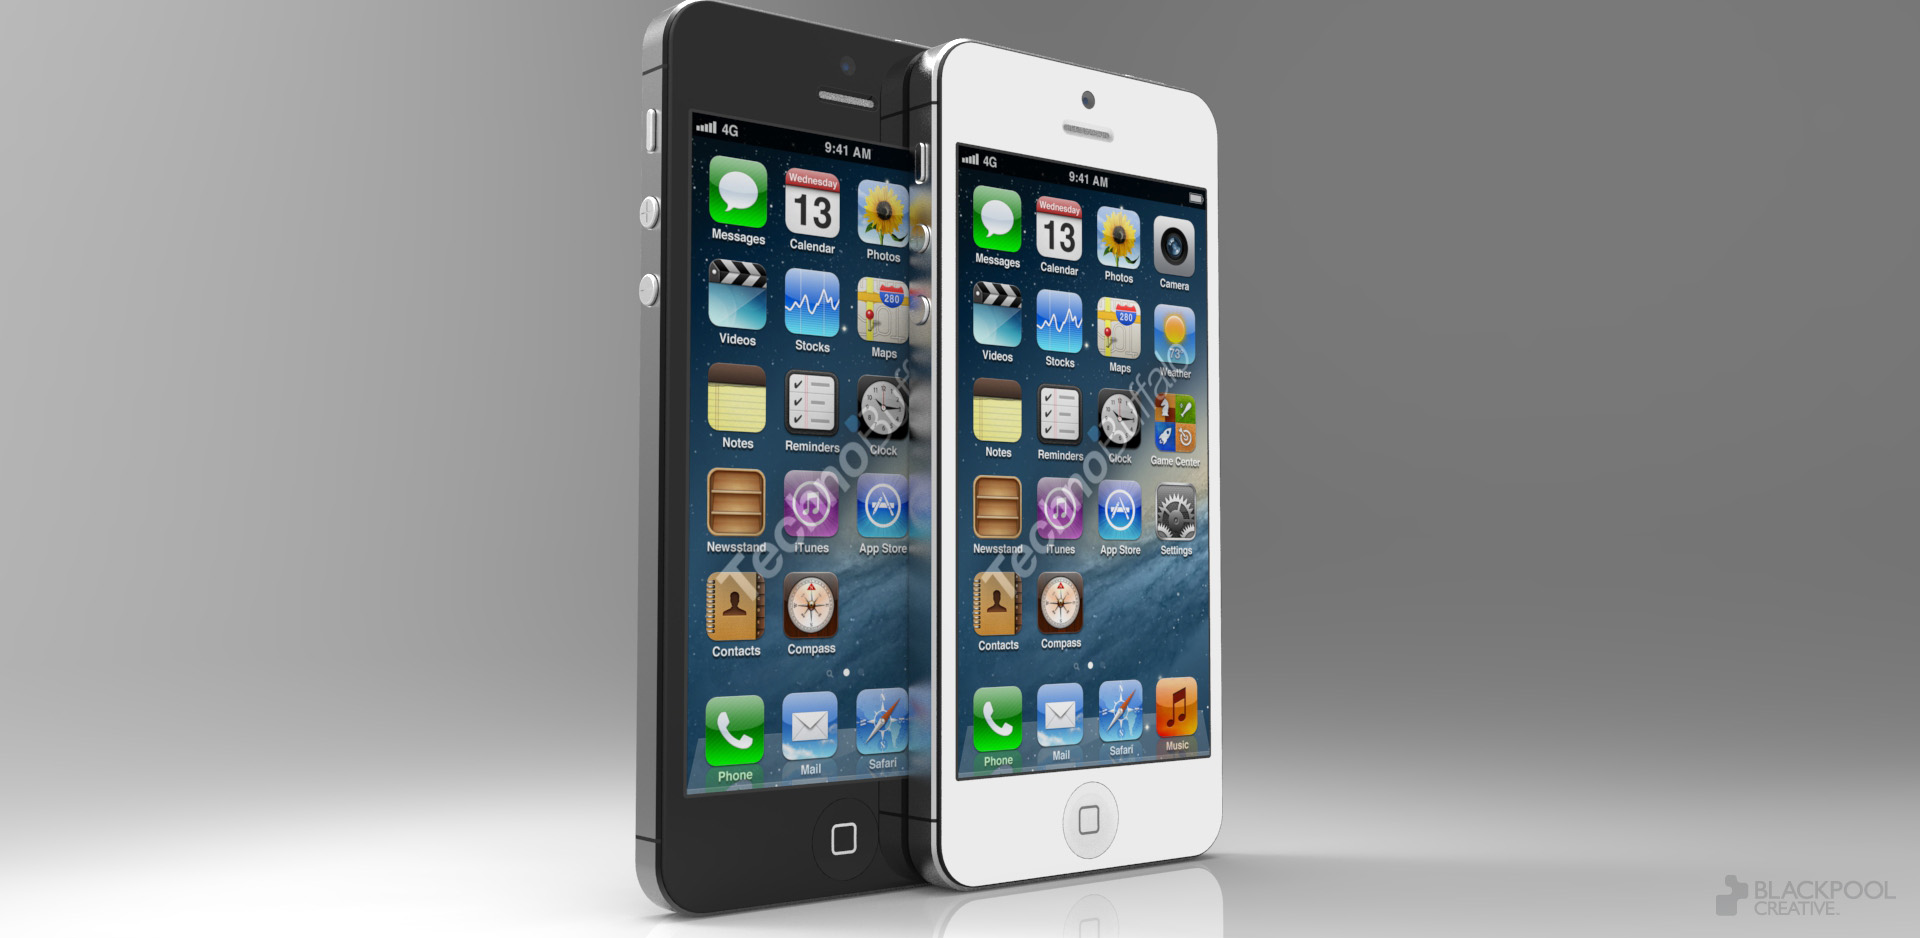 Mockup do novo iPhone, baseado nos recentes rumores